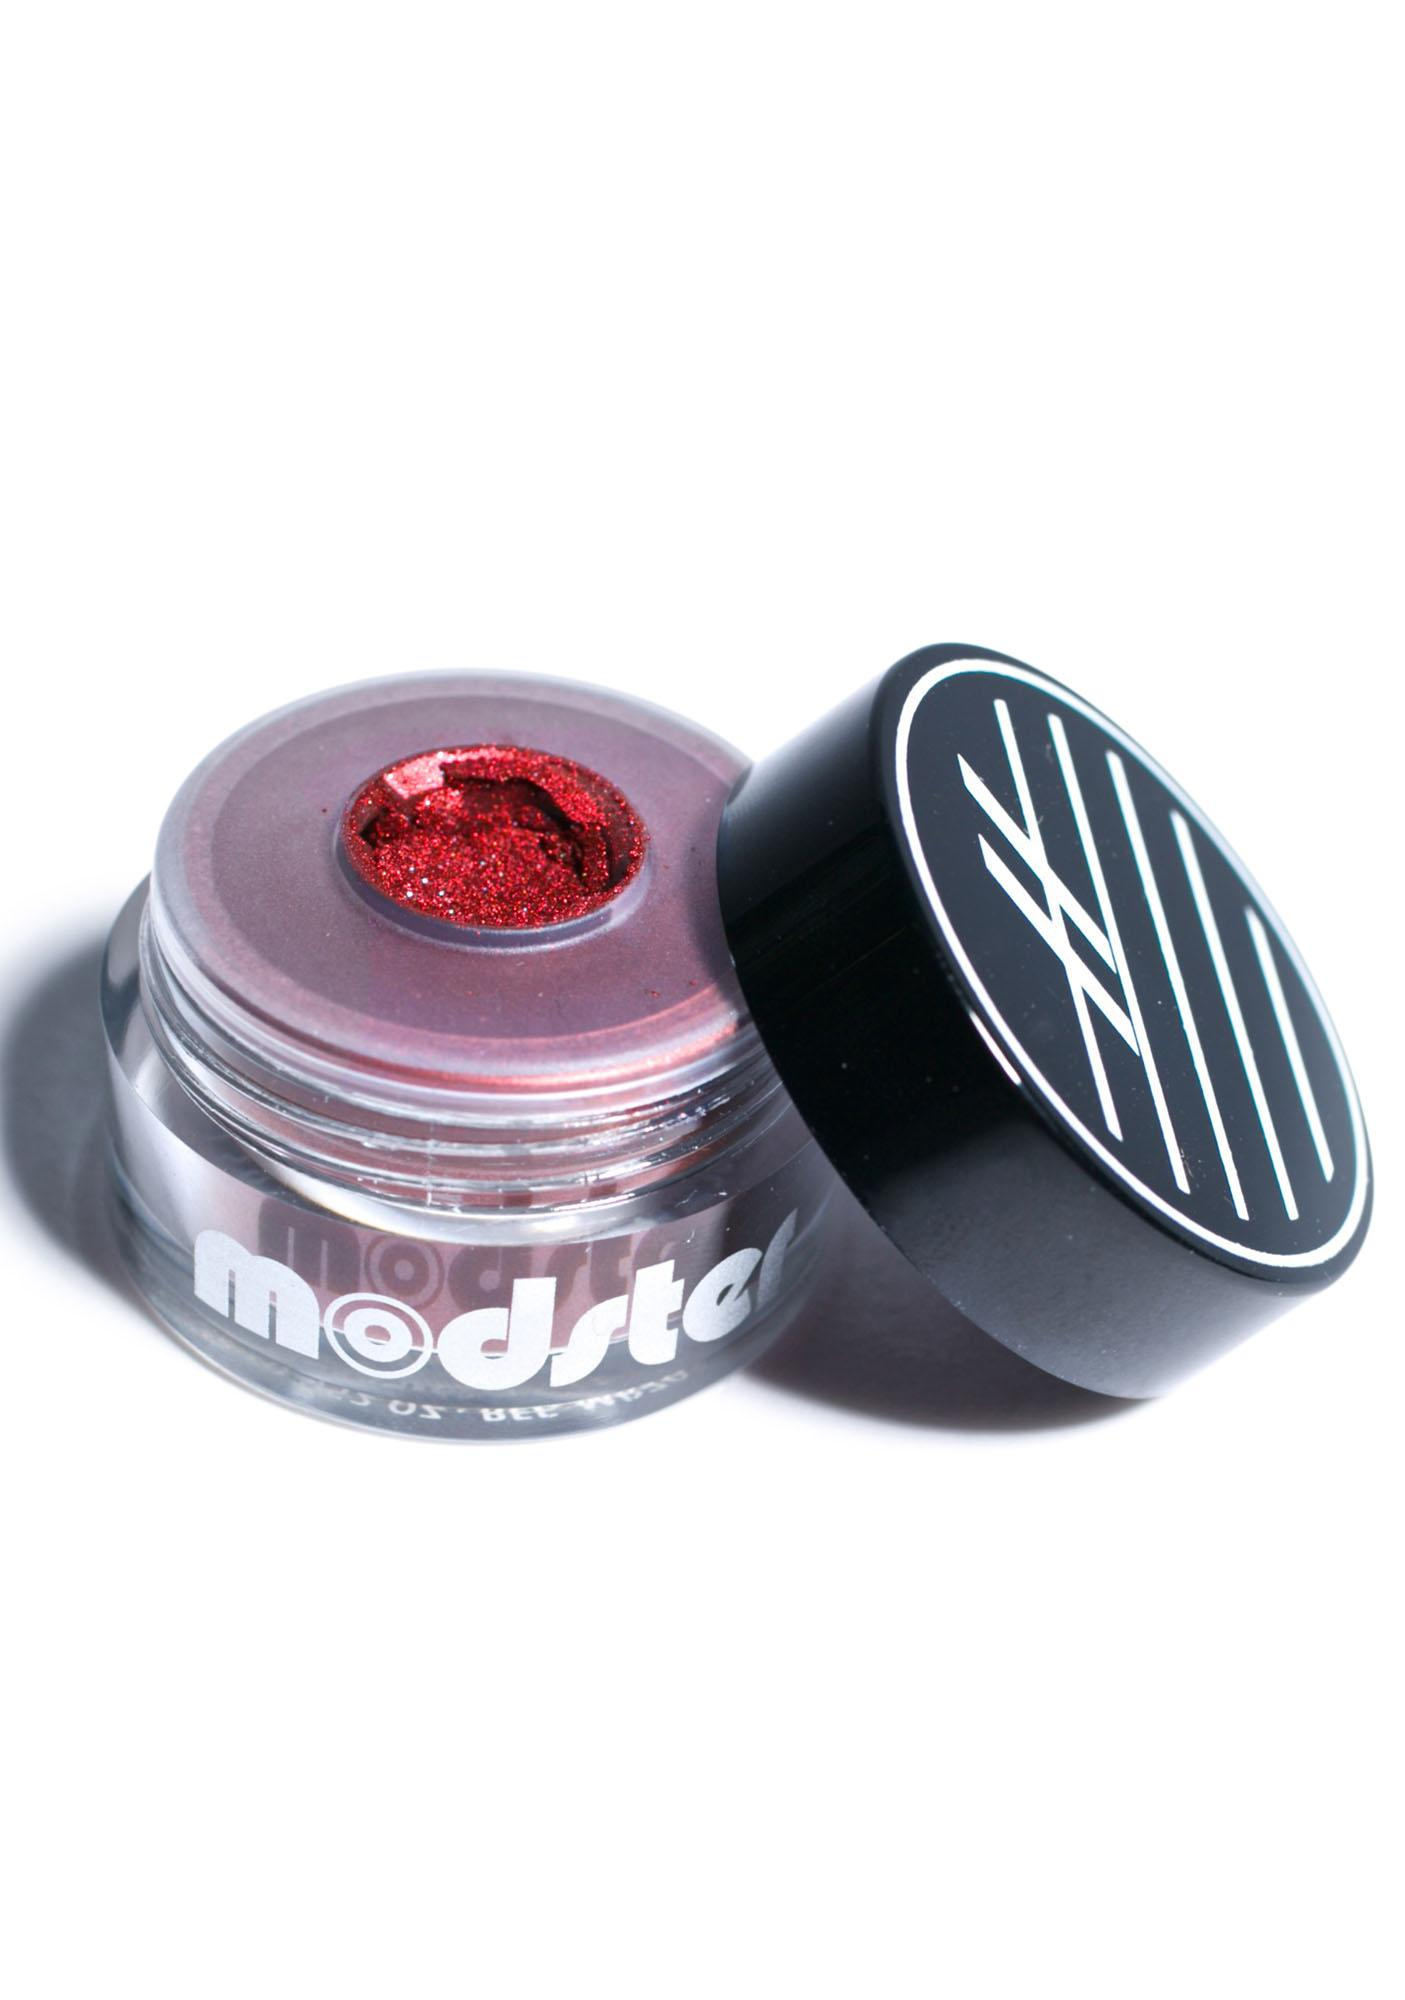 Ardency Inn Teddy Boy Modster Light Catching Eye Powder